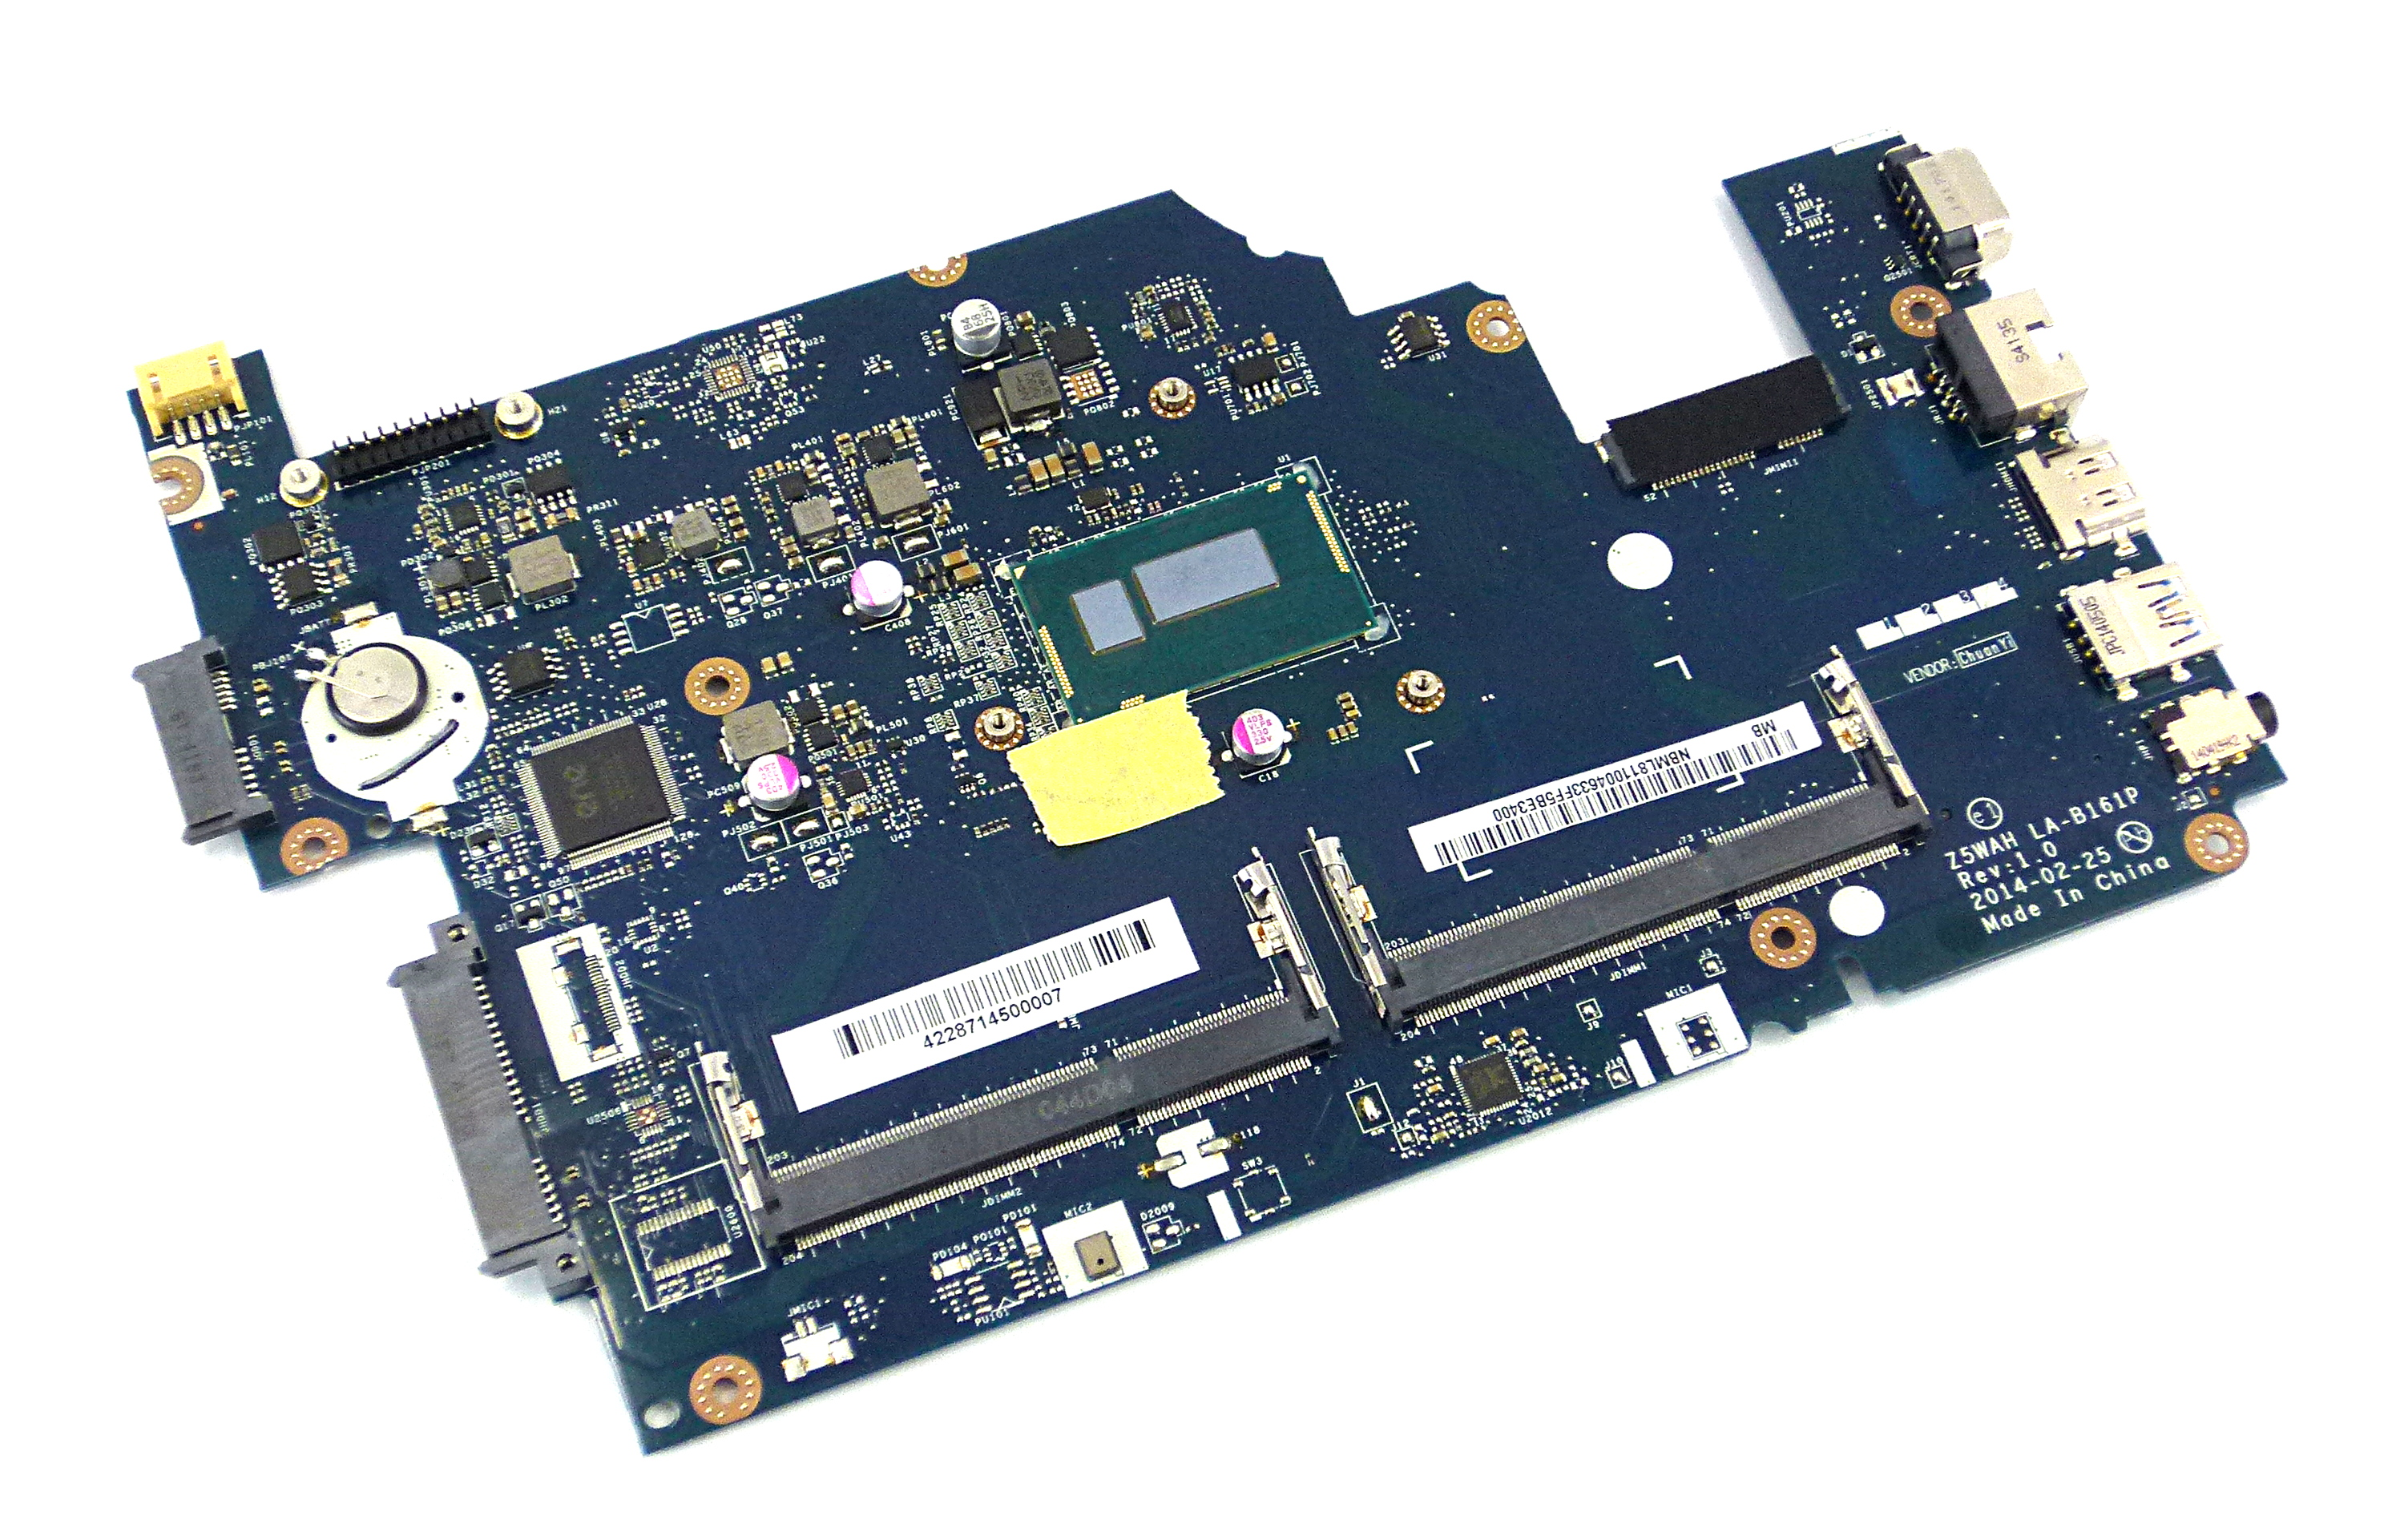 Placa de baza Acer TravelMate P256-M model NB.ML811.002 cu procesor Intel i3-4030u